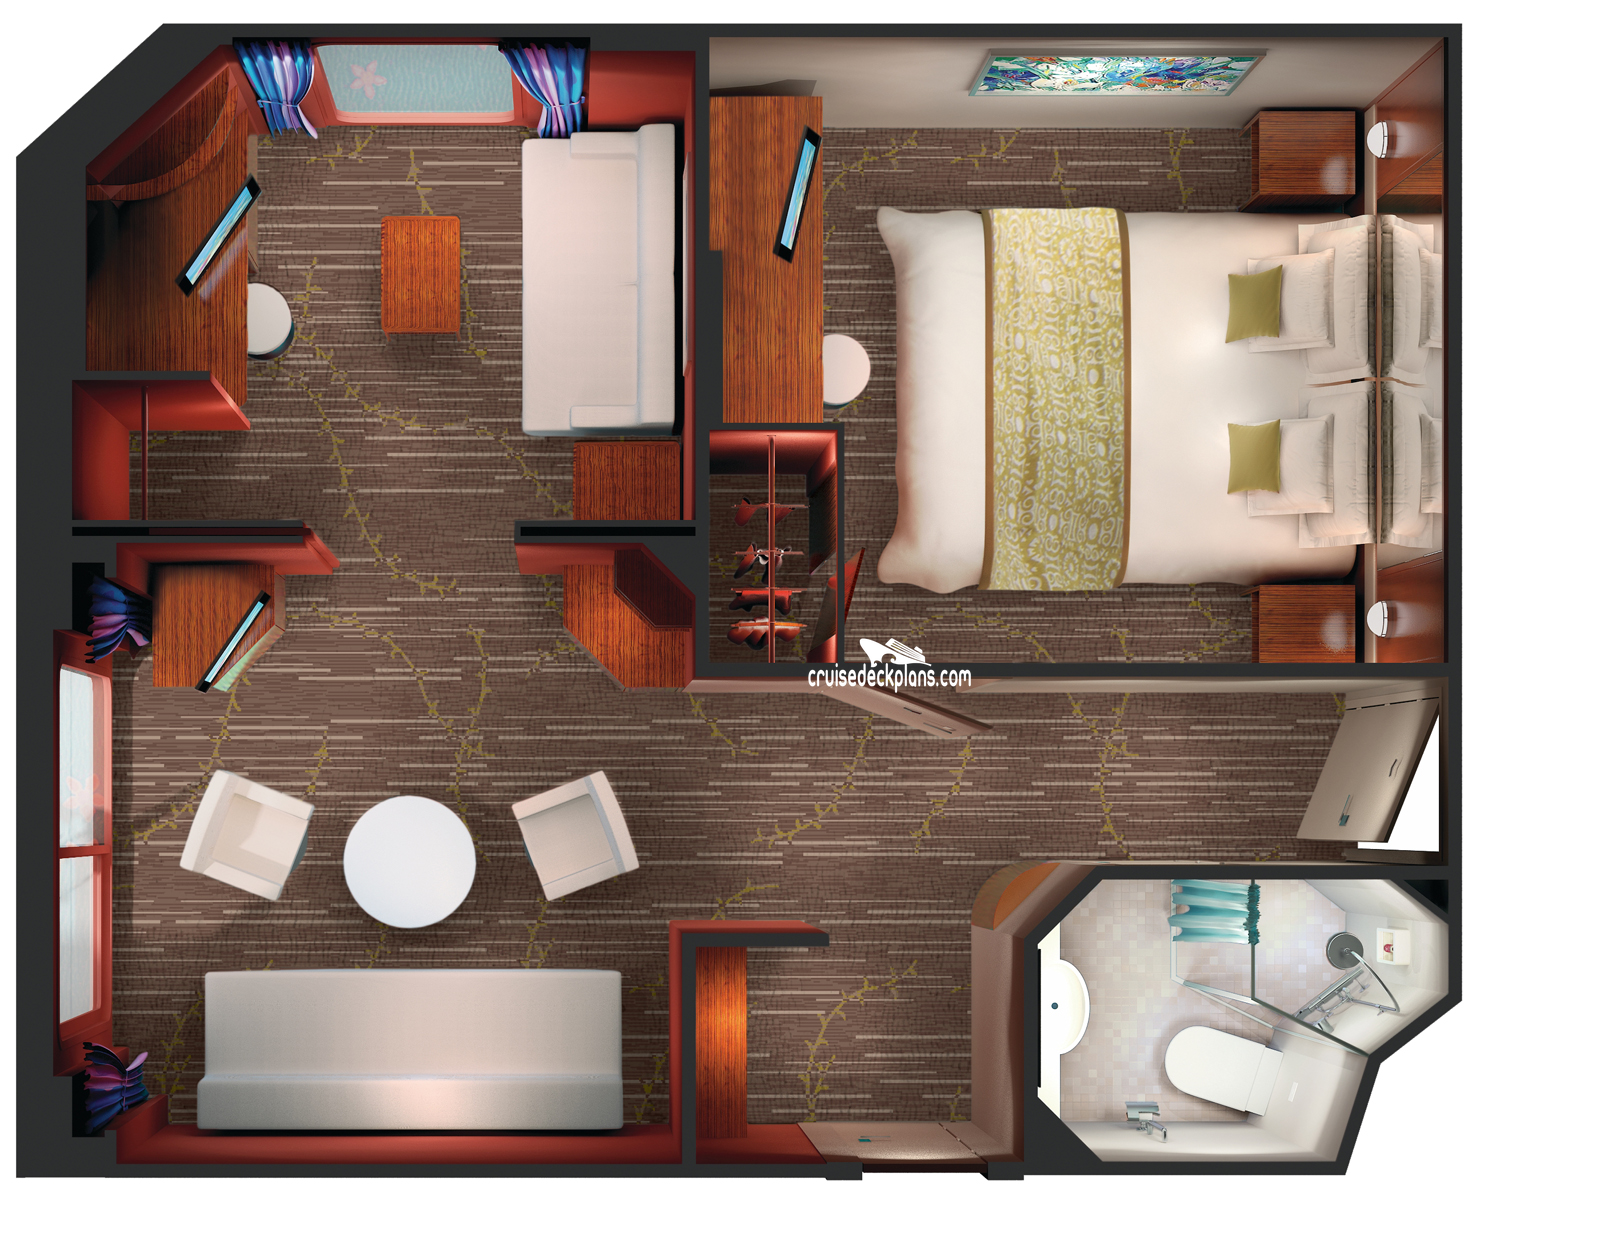 Pride Of America 2 Bedroom Family Suite Stateroom